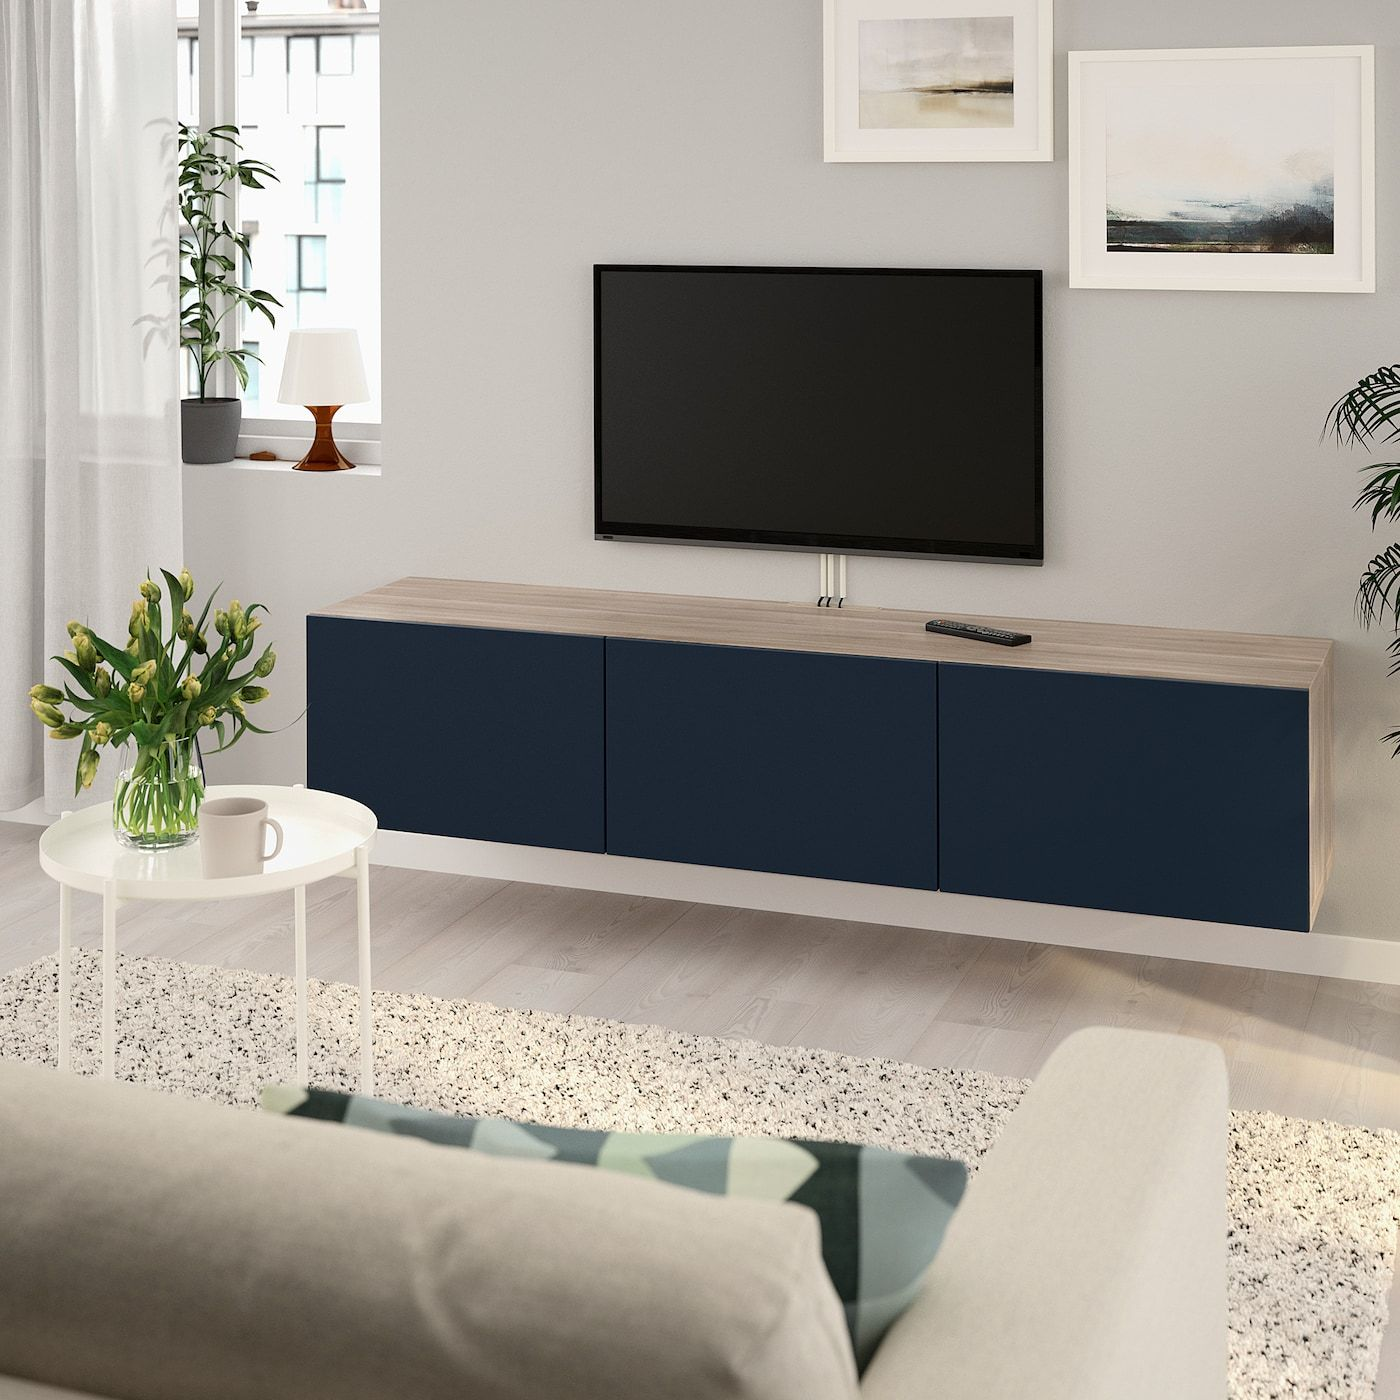 Tv Kast 70 Cm.Besta Tv Unit With Doors Walnut Effect Light Gray Notviken Blue